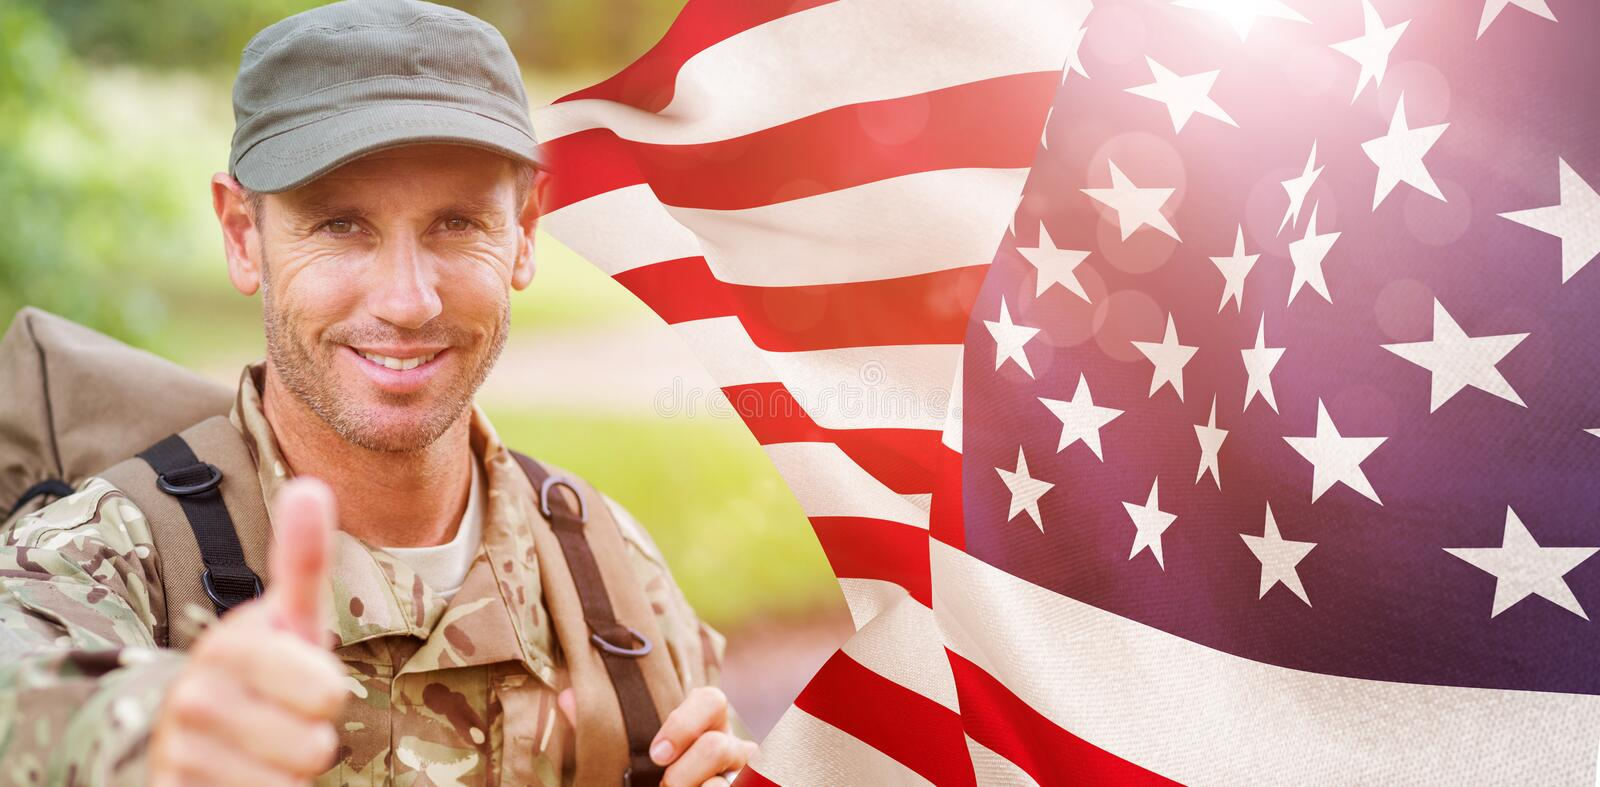 Composite image of portrait of happy army man with thumbs up. Portrait of happy army man with thumbs up against focus on usa flag stock photography